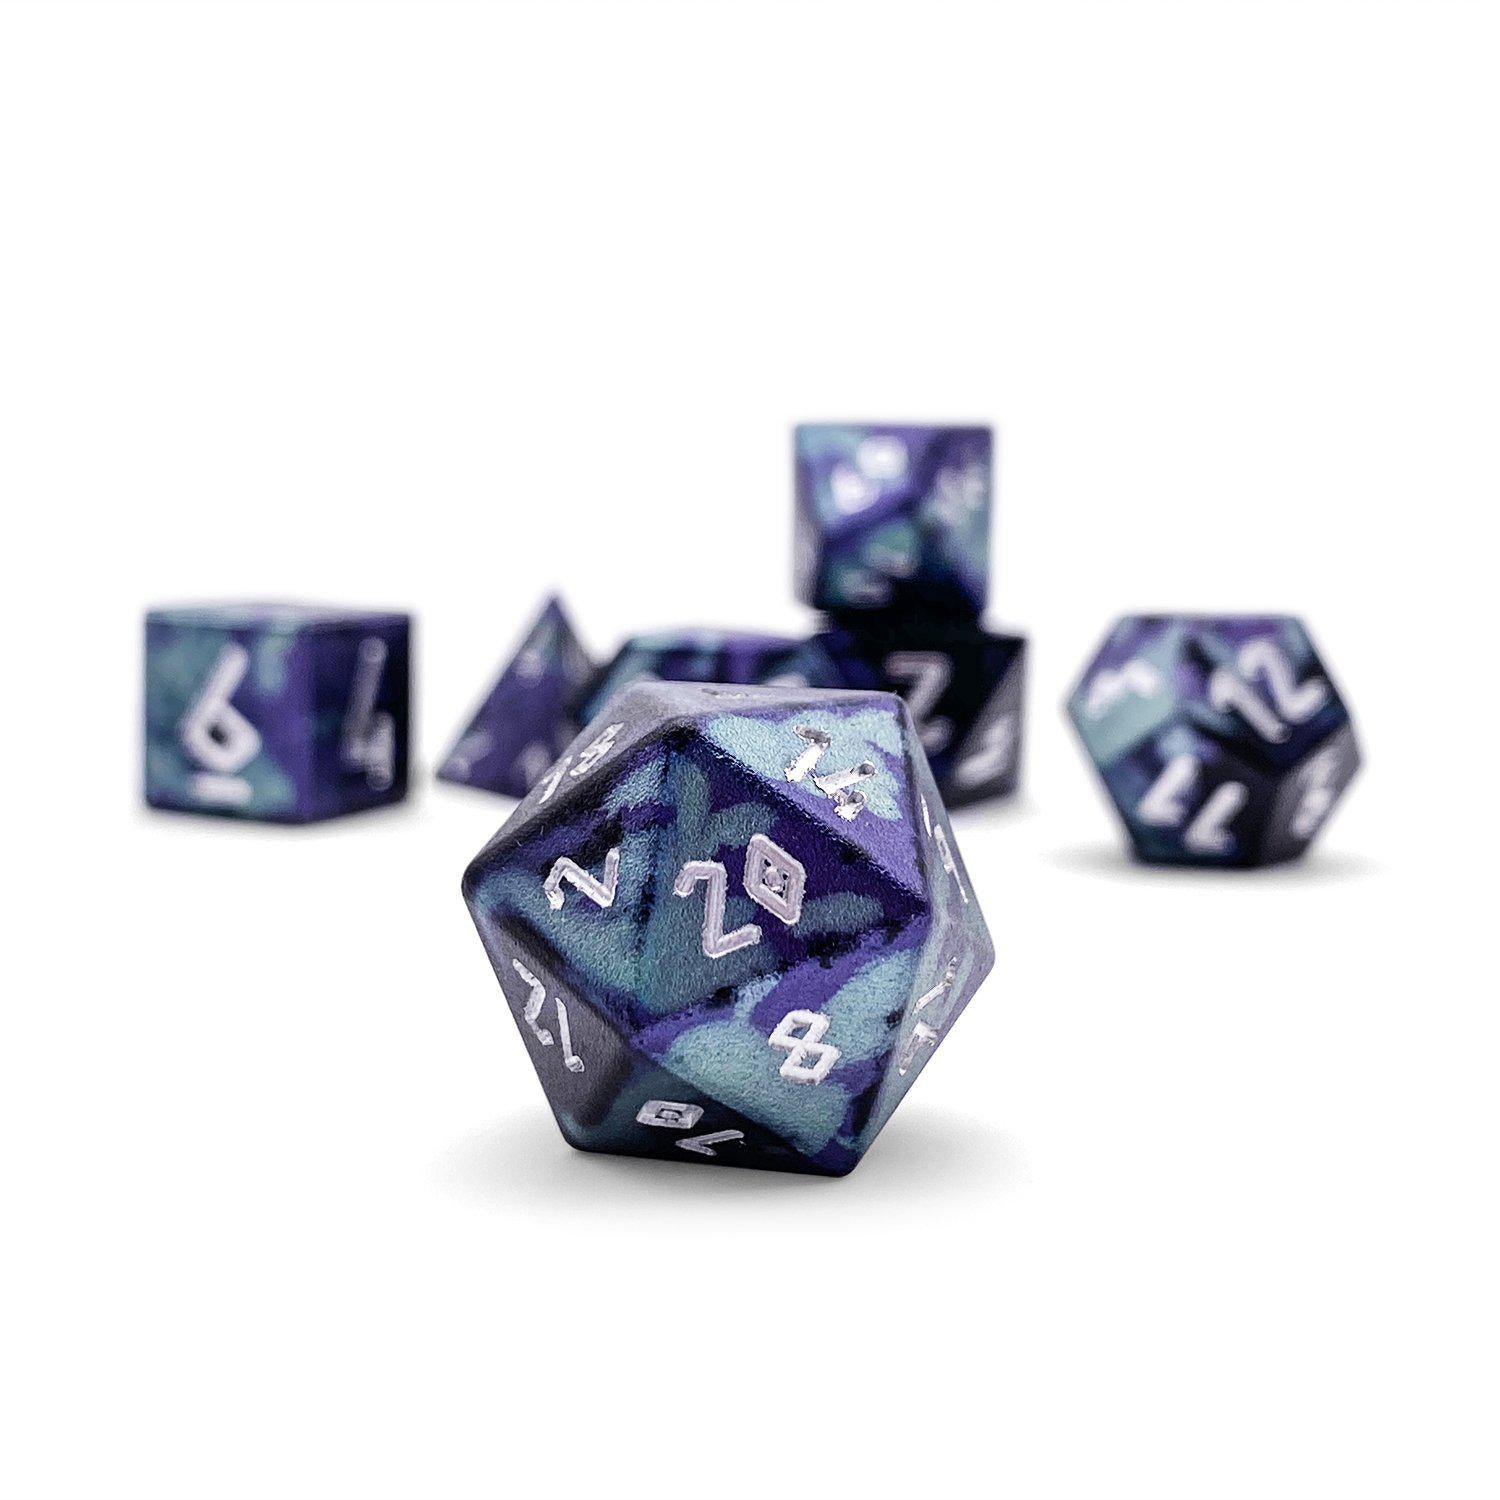 Witches Cauldron Wondrous Dice Set Of 7 Rpg Dice Norse Font By Norse Norse Foundry We've got a new contact, unknown. norse foundry